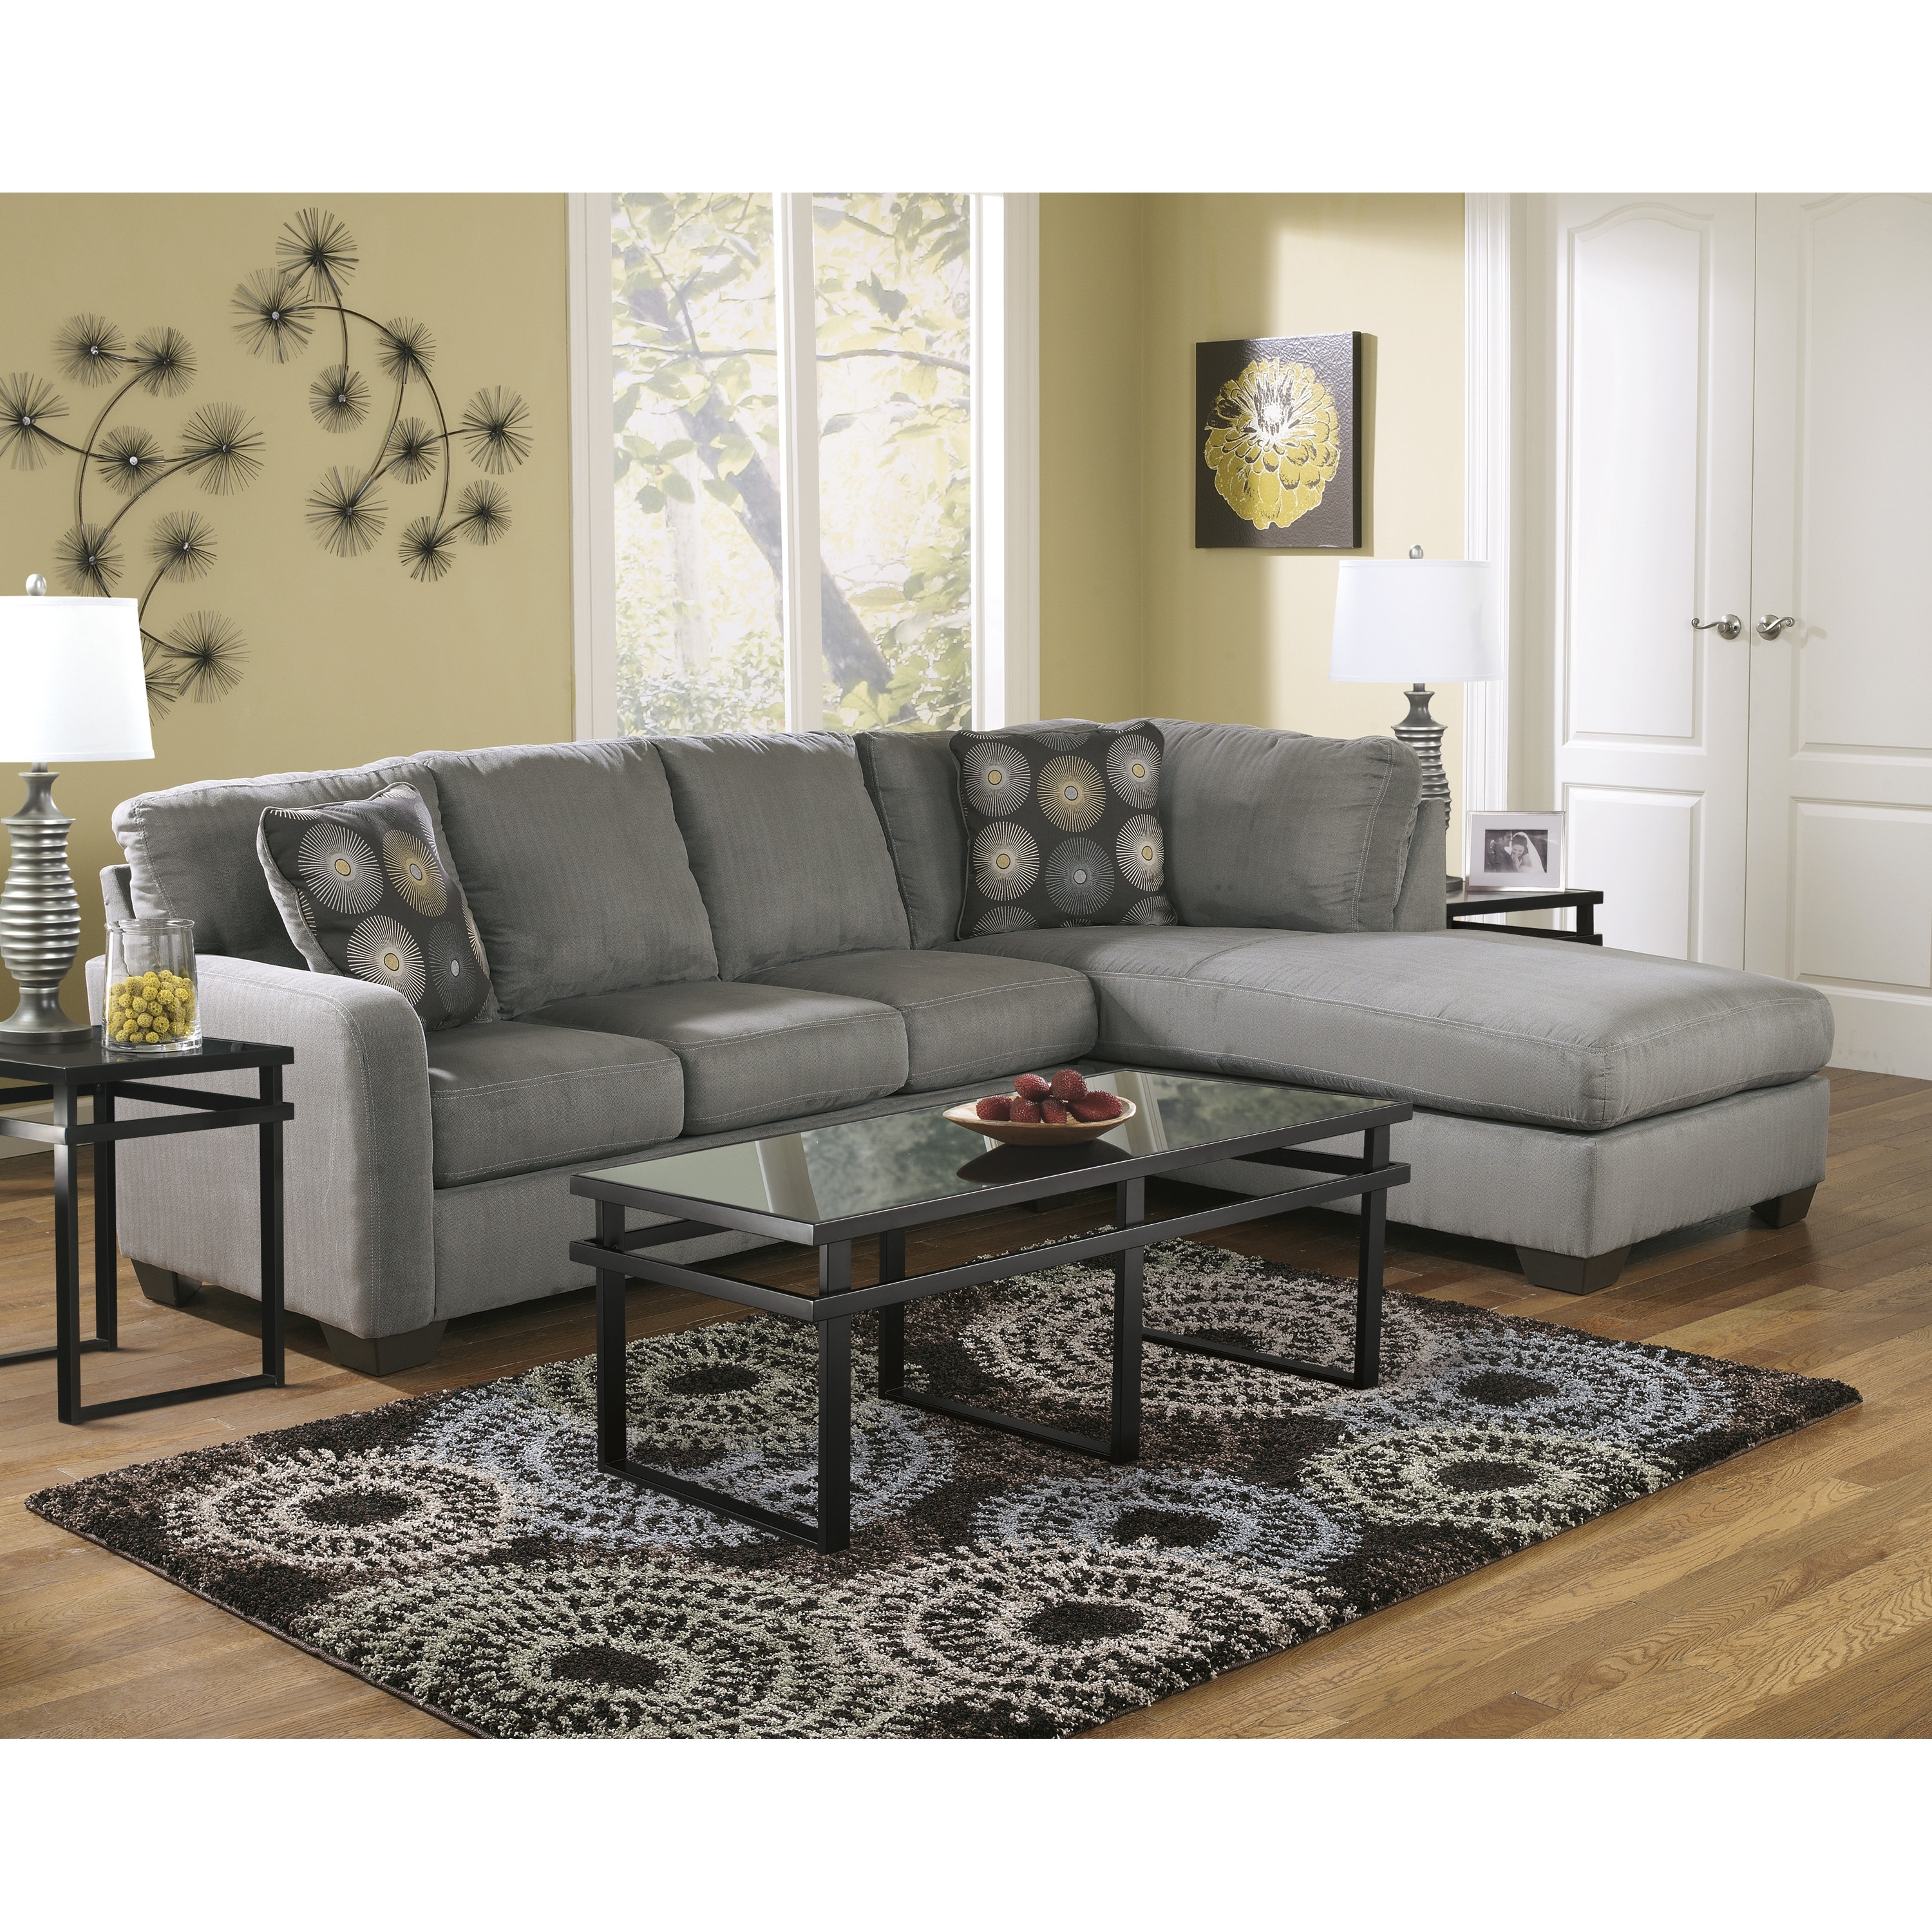 Popular Tables For Couches Fresh In Great Furniture L Shaped Grey Regarding Coffee Tables For Sectional Sofa With Chaise (View 11 of 15)